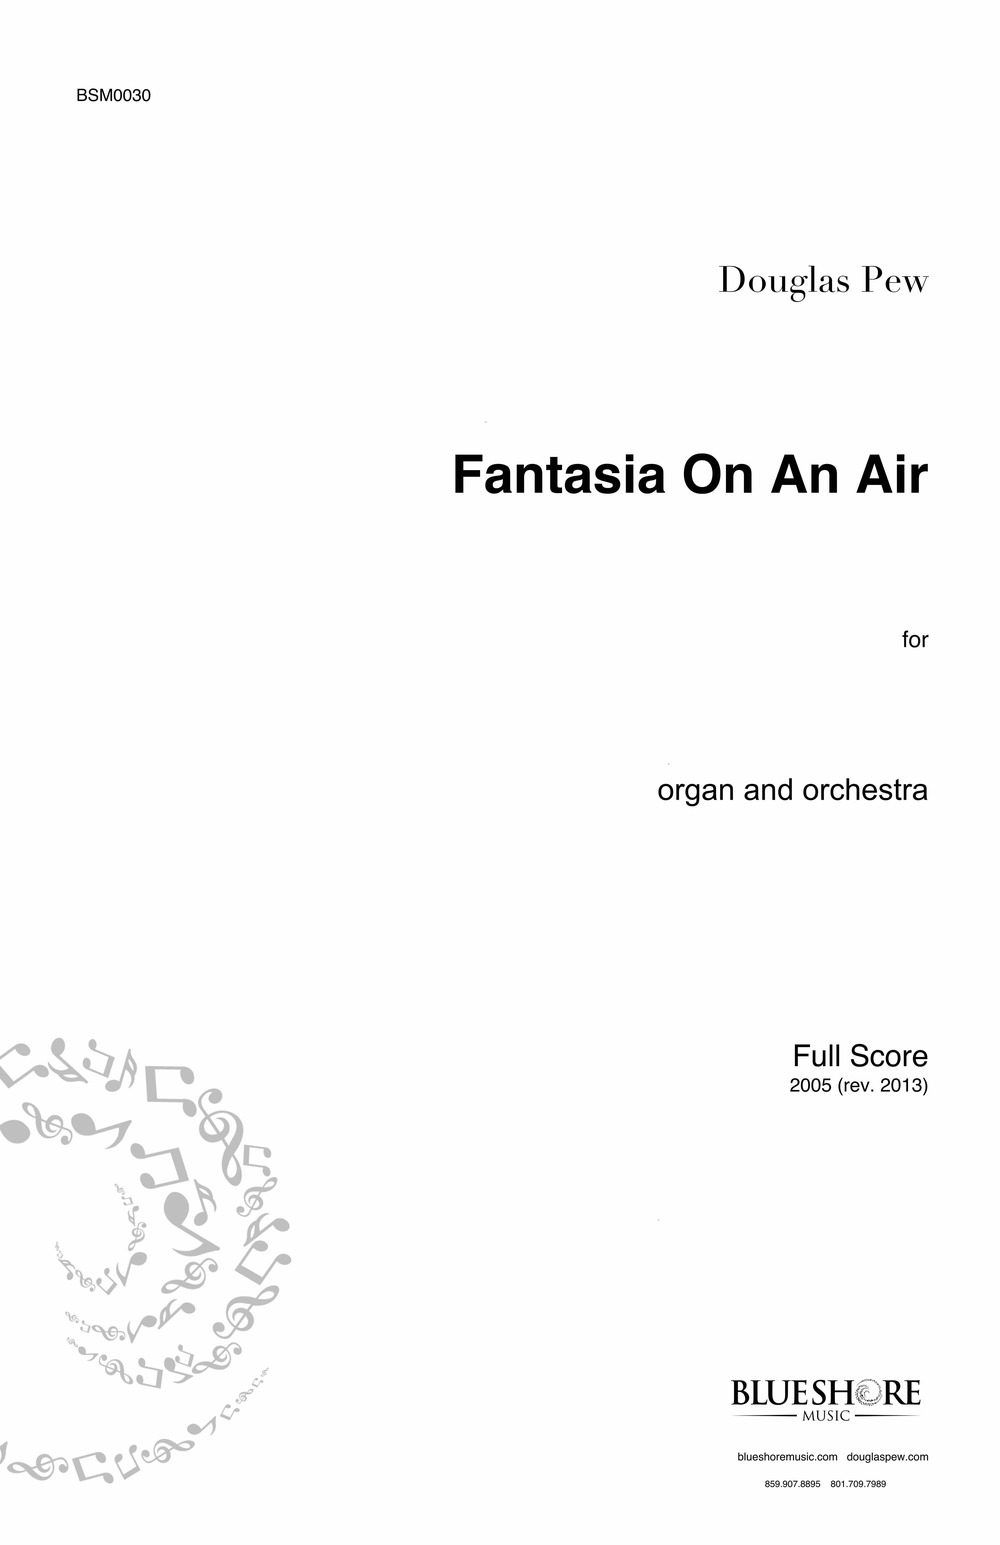 Fantasia On An Air - for Organ and Orchestra